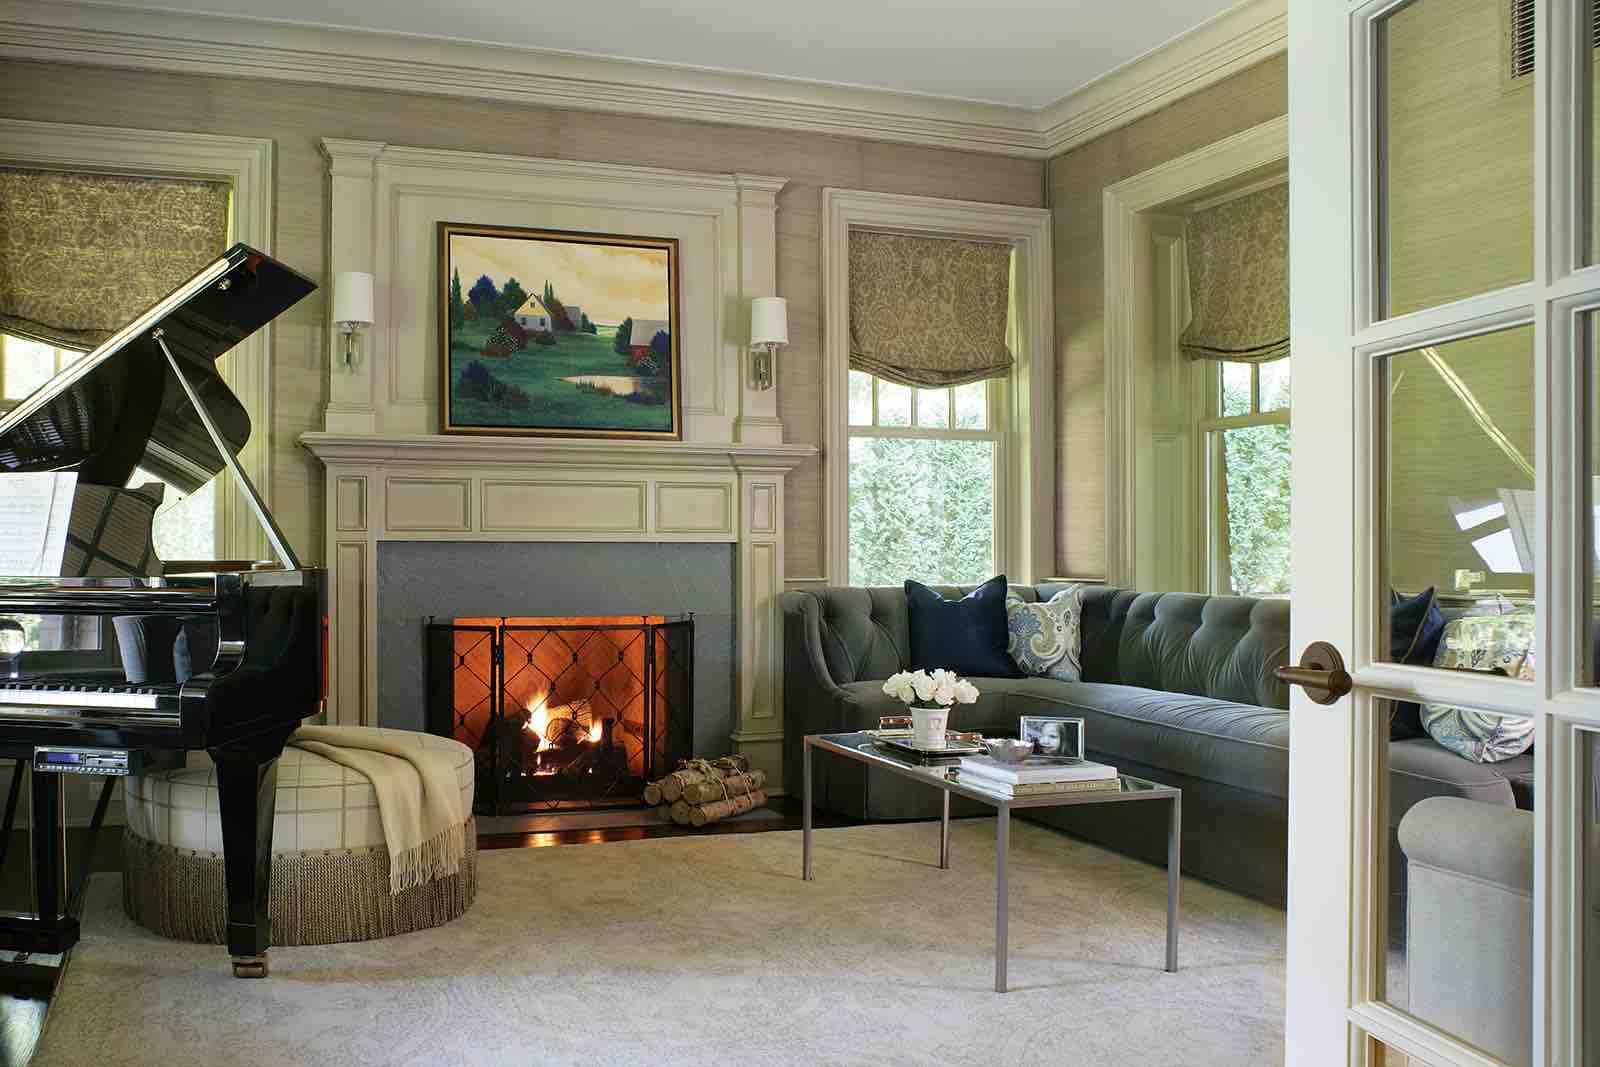 Fireplace Design - Living Room FIreplaces